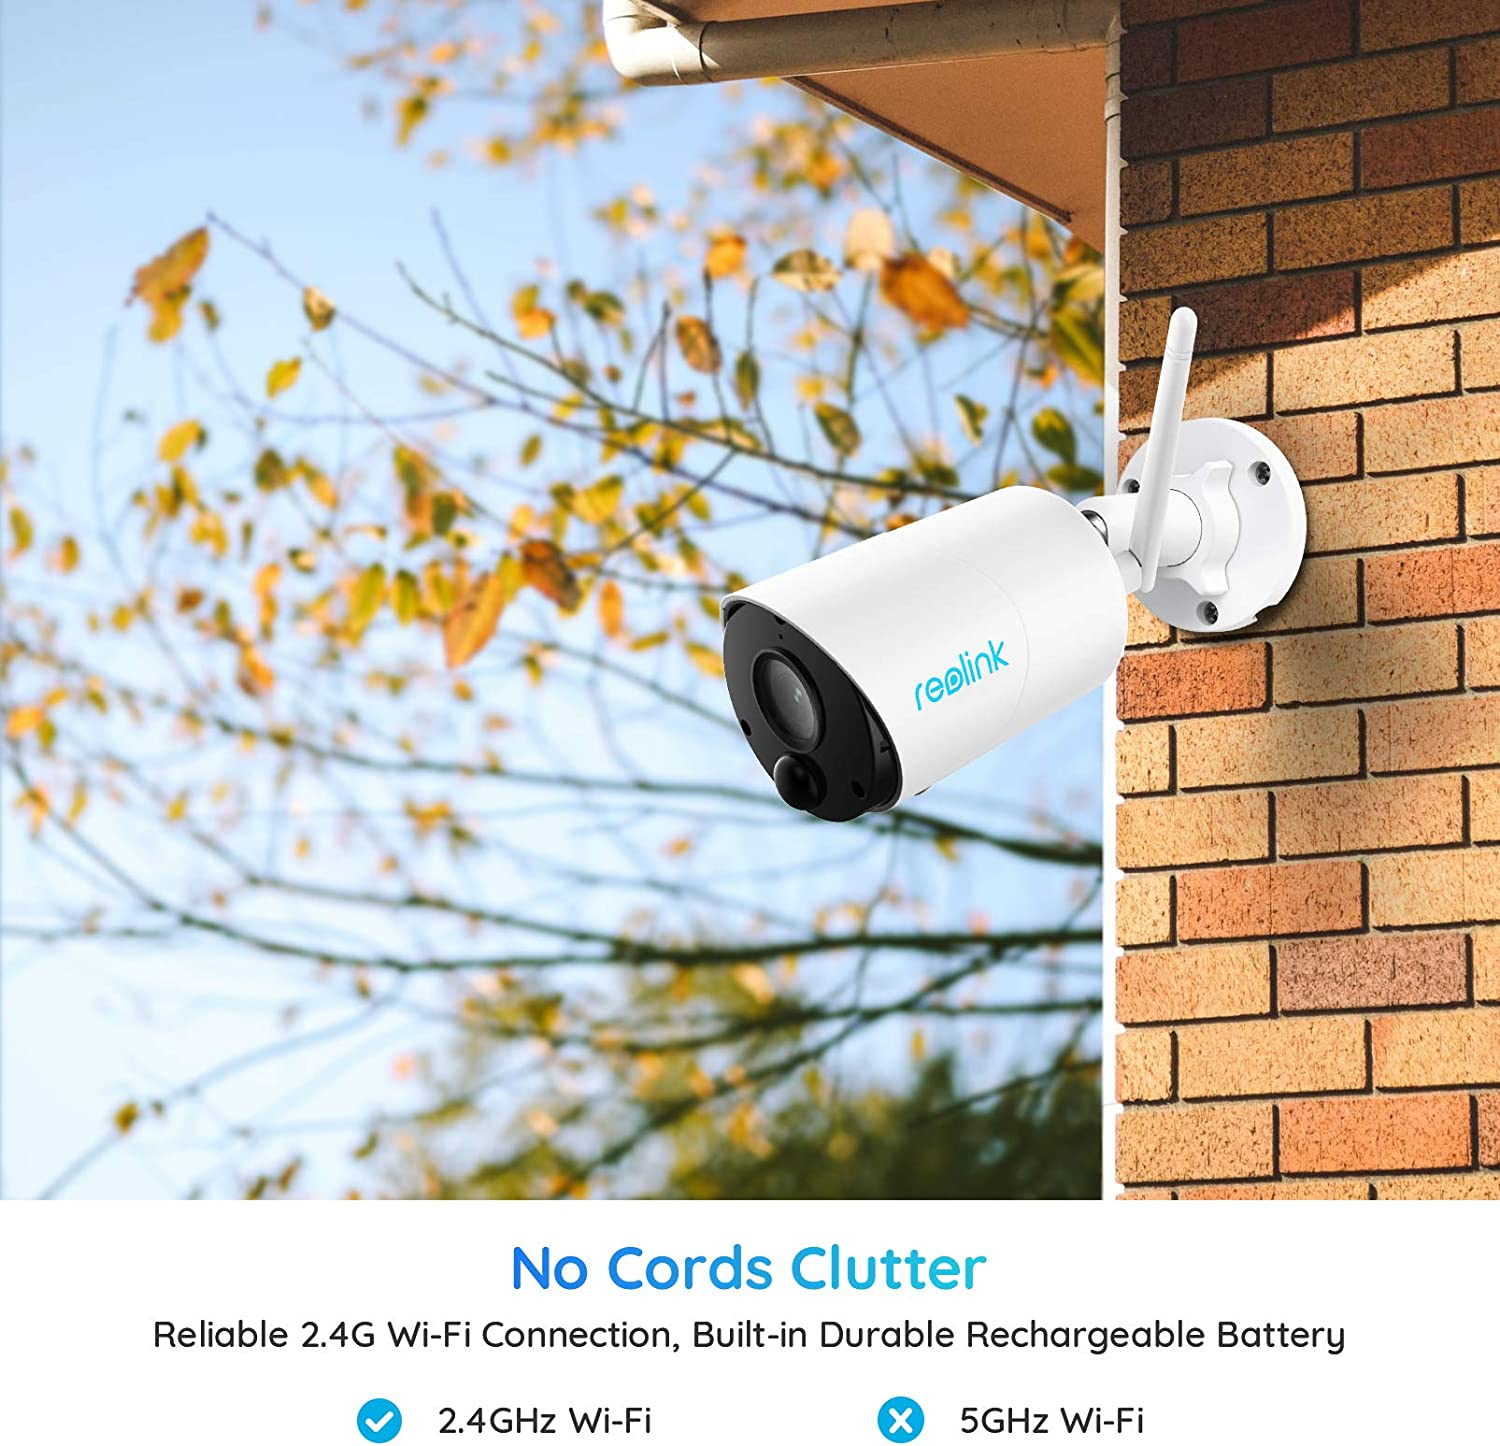 Reolink 1080P HD Wireless Security Camera Outdoor, Rechargeable Battery-Powered Smart WiFi Camera, Night Vision, 2-Way Talk, Works with Alexa, Cloud/Local SD Storage, Argus Eco